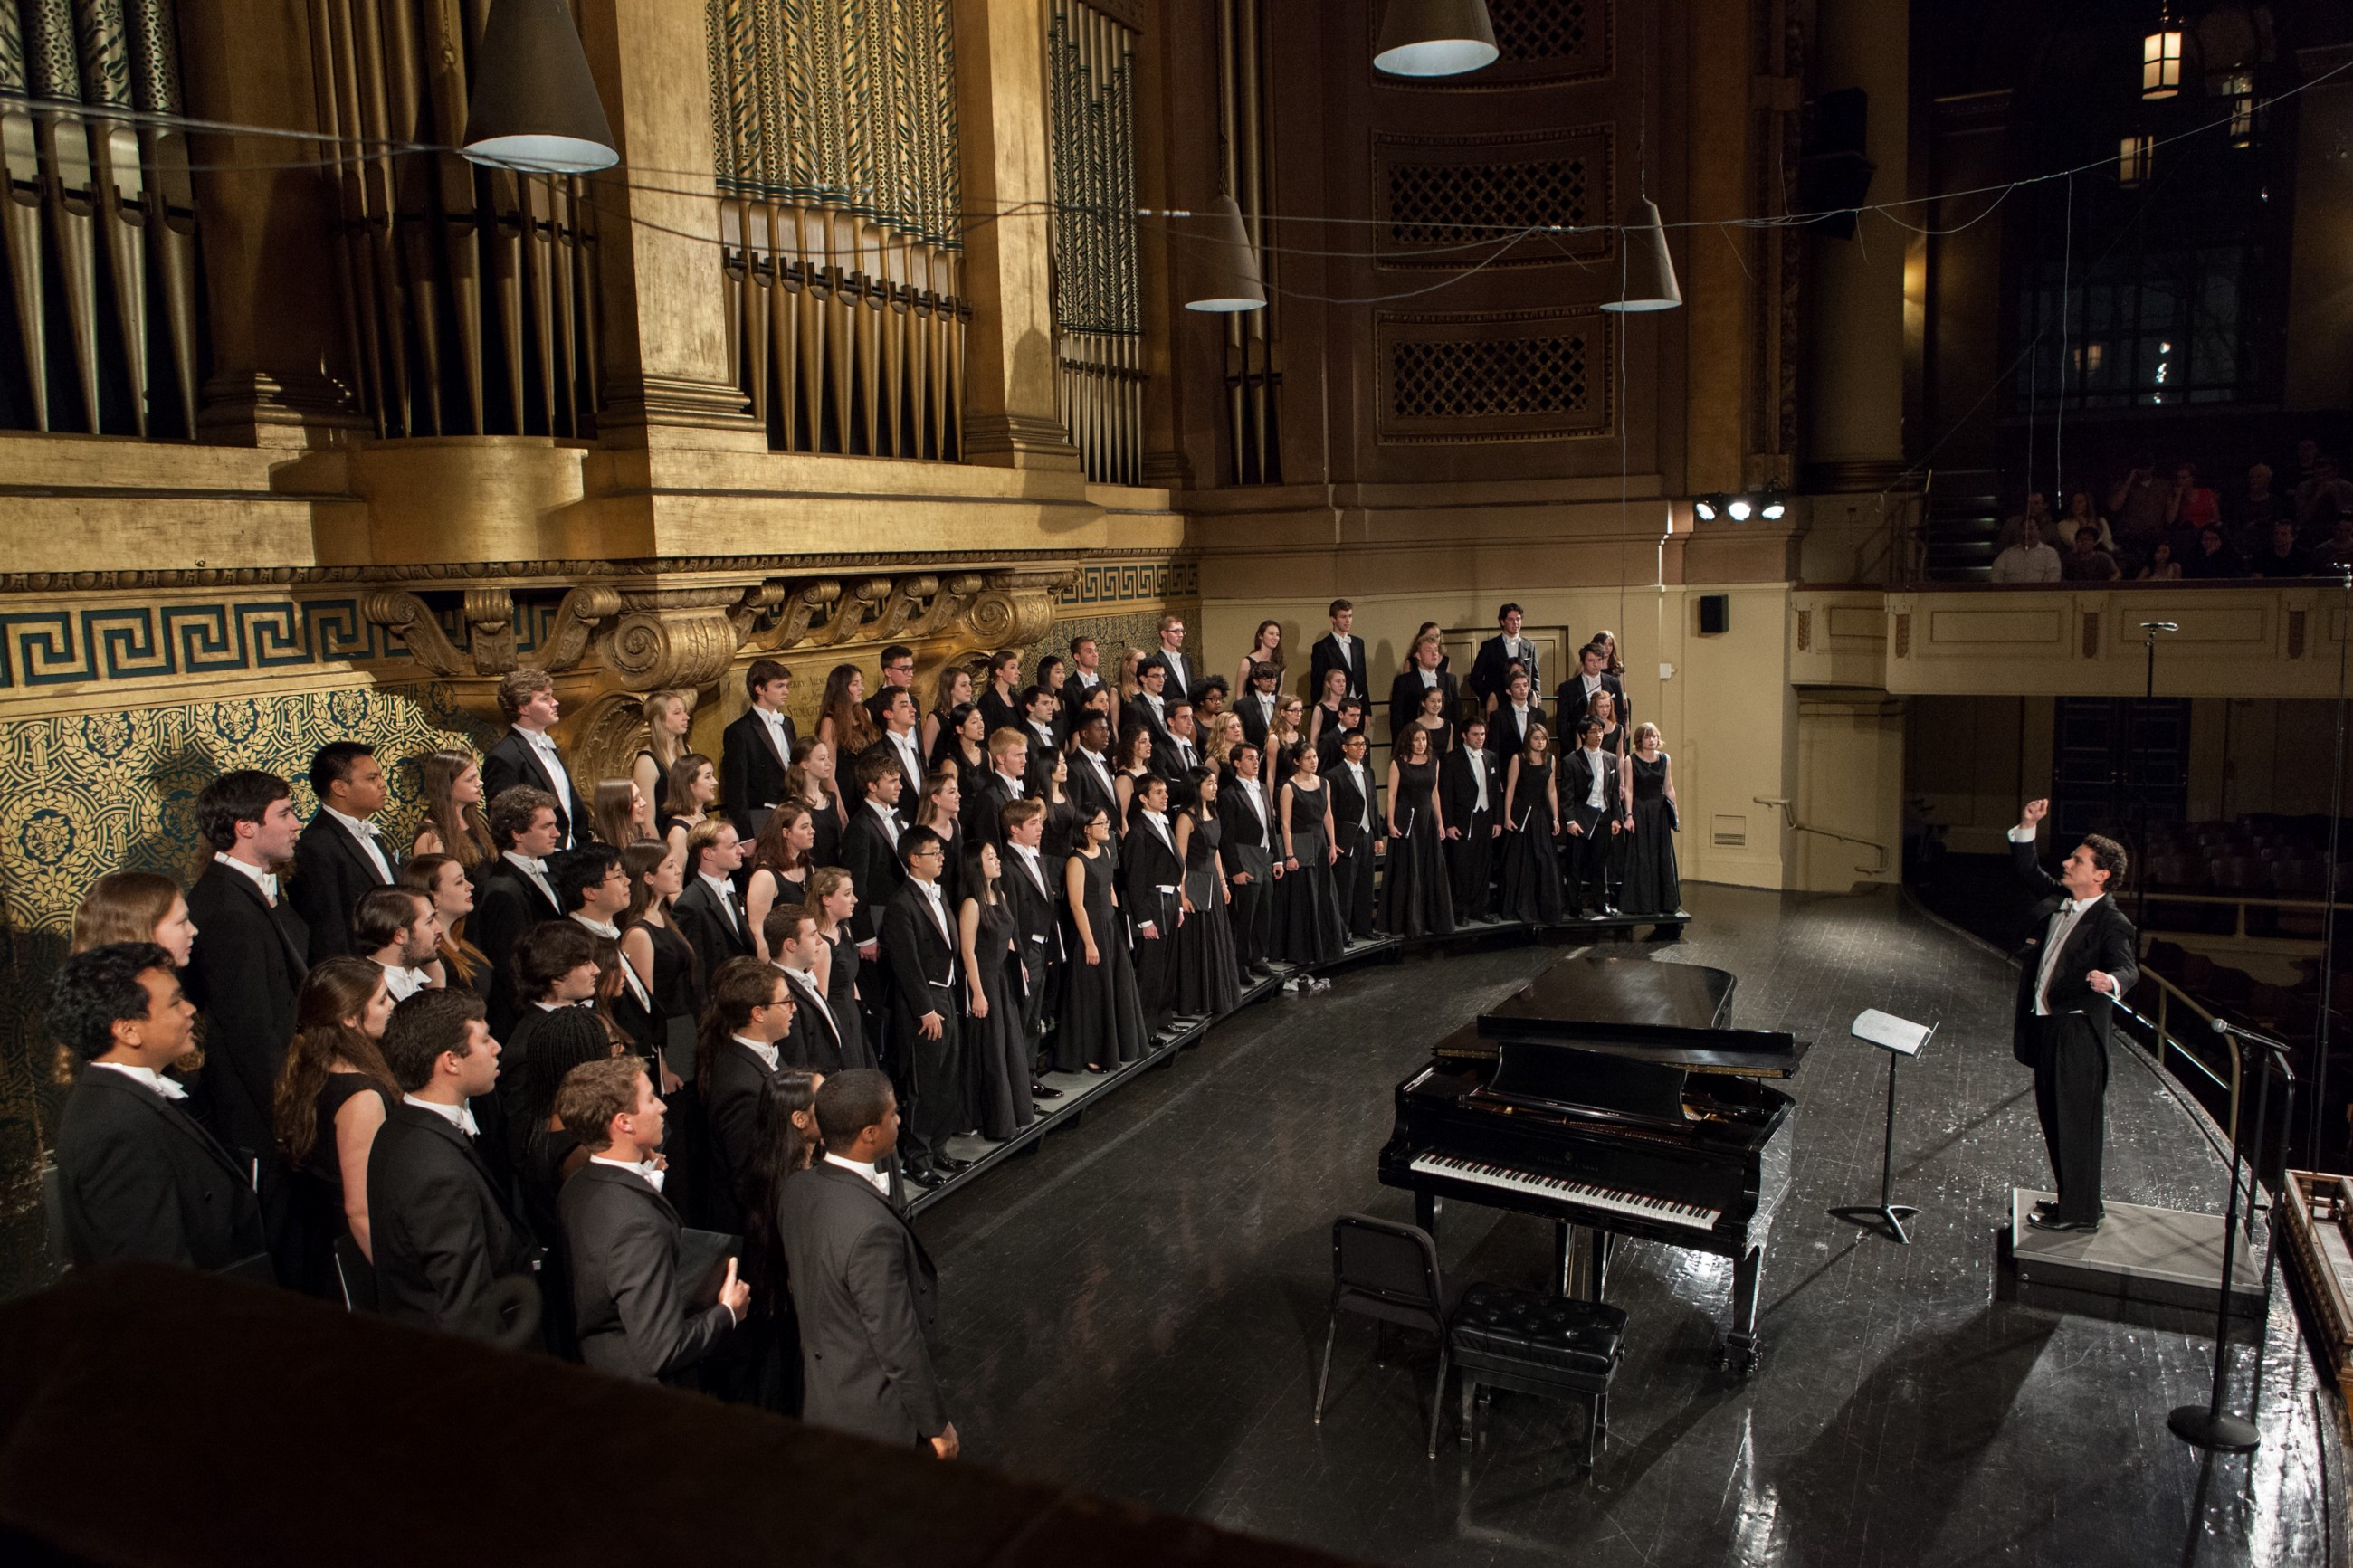 Classical Movements Presents Three American College Choirs In South